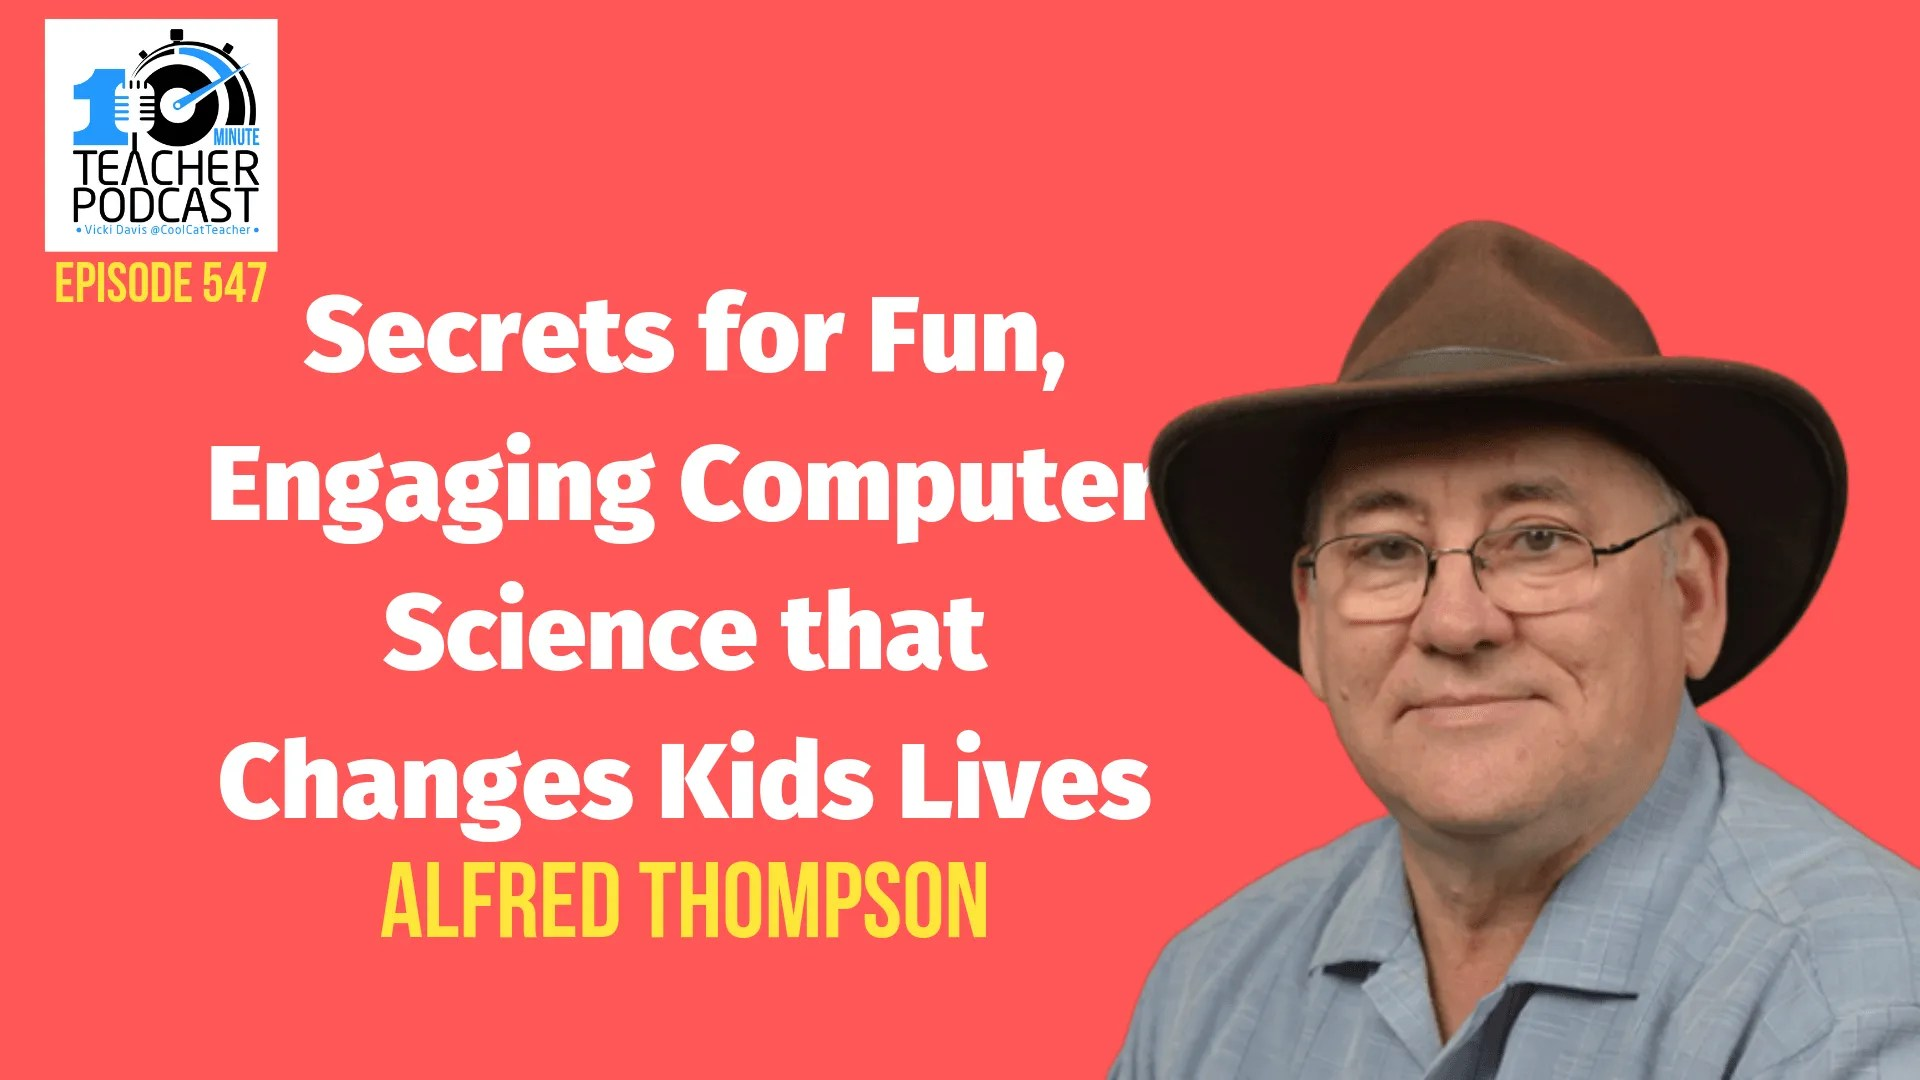 Secrets for Fun, Engaging Computer Science that Changes Kids Lives